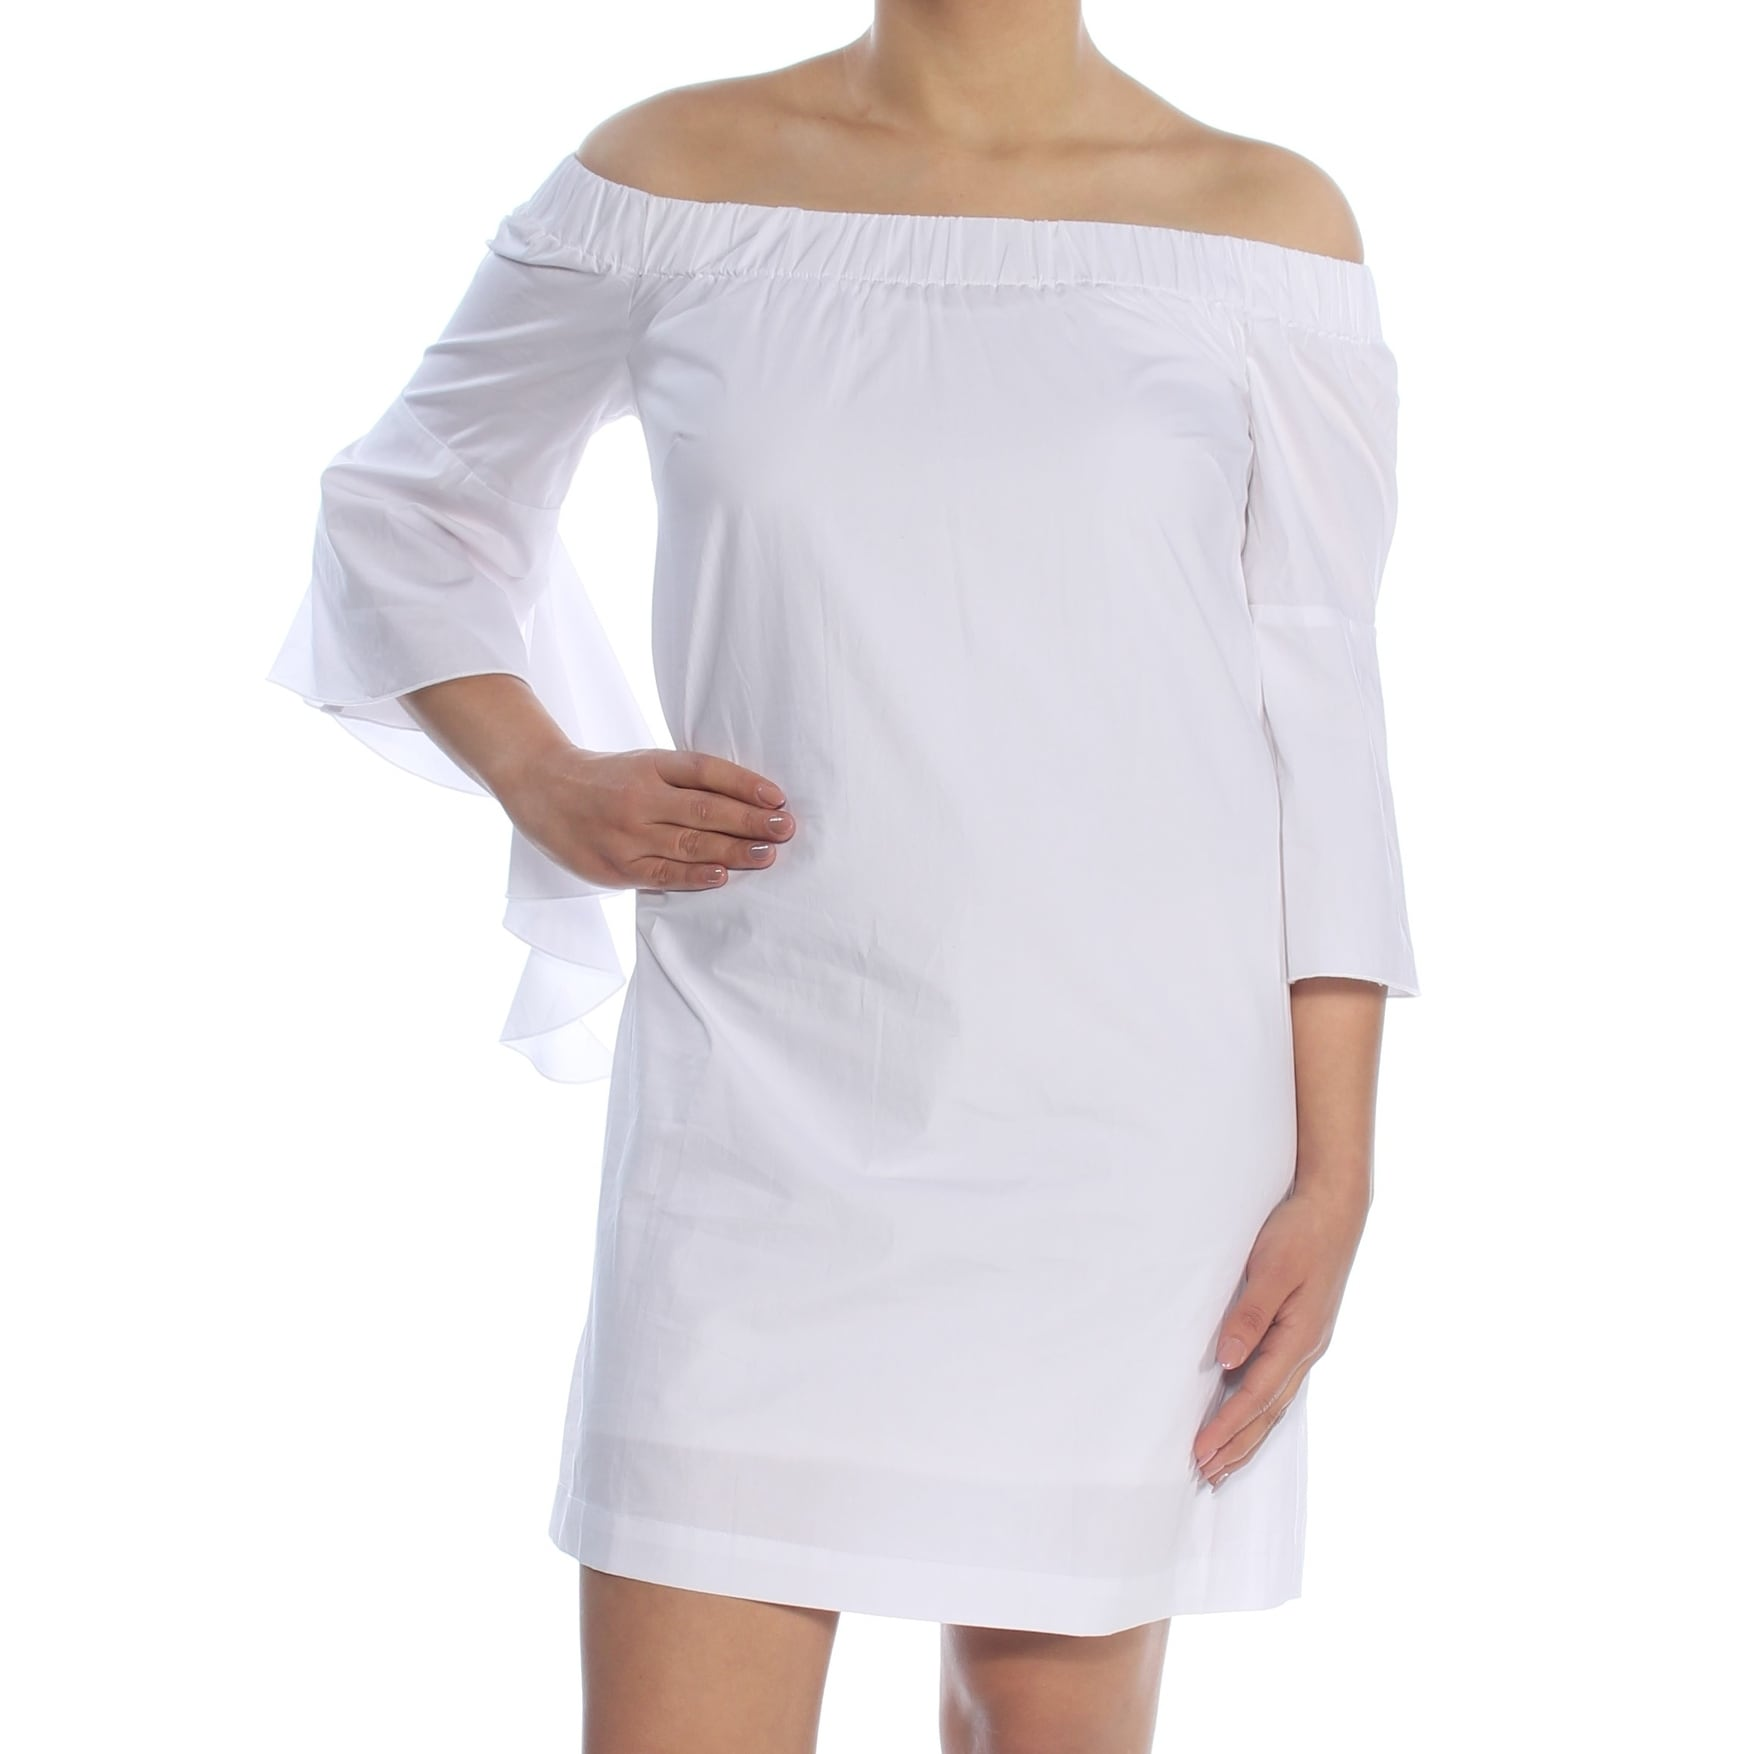 4eed3a346364 kensie Dresses | Find Great Women's Clothing Deals Shopping at Overstock